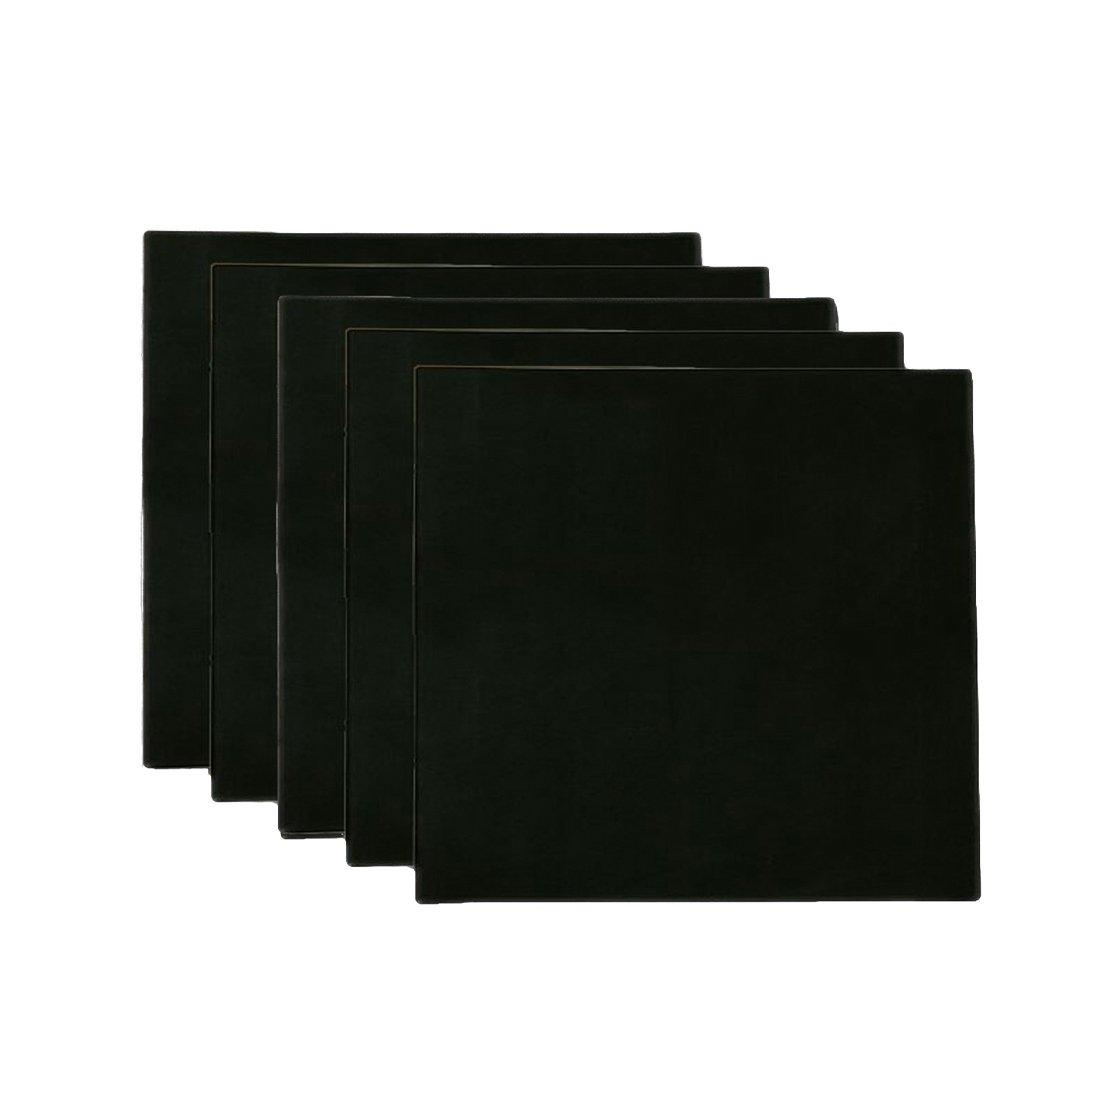 Salome Idea 30x30CM (12x12 Inch) Artist Square Stretched Canvas, Middle Size Pre-Stretched Cotton Canvas Panel Boards 5-Pack, Black